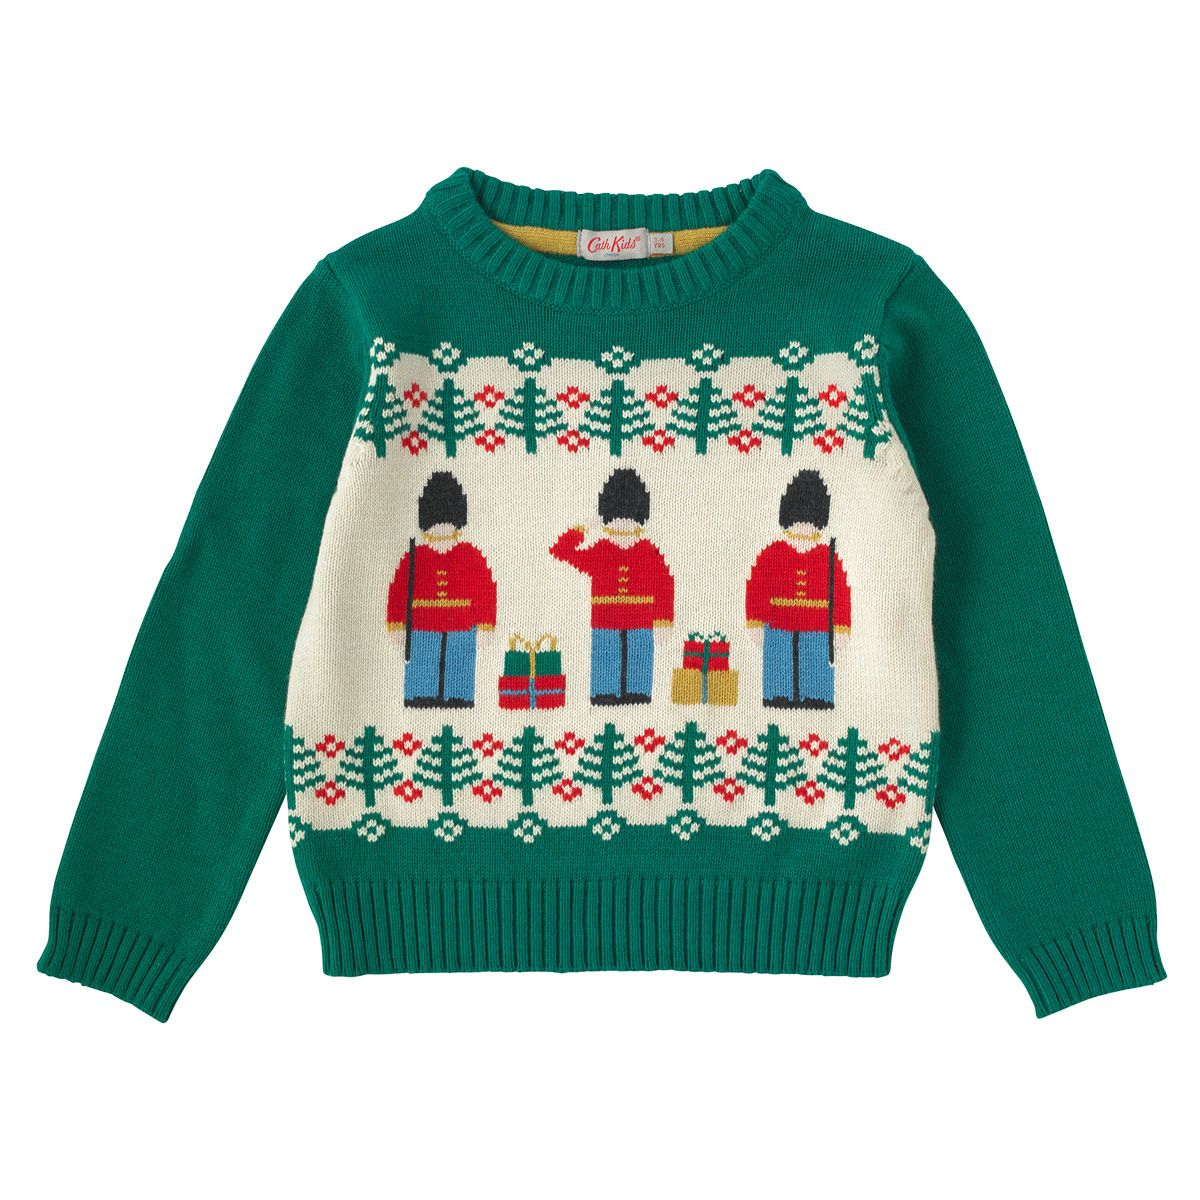 Marching Band Christmas Kids Jumper Kids View All Cathkidston Kids Jumpers Christmas Jumpers Clothes